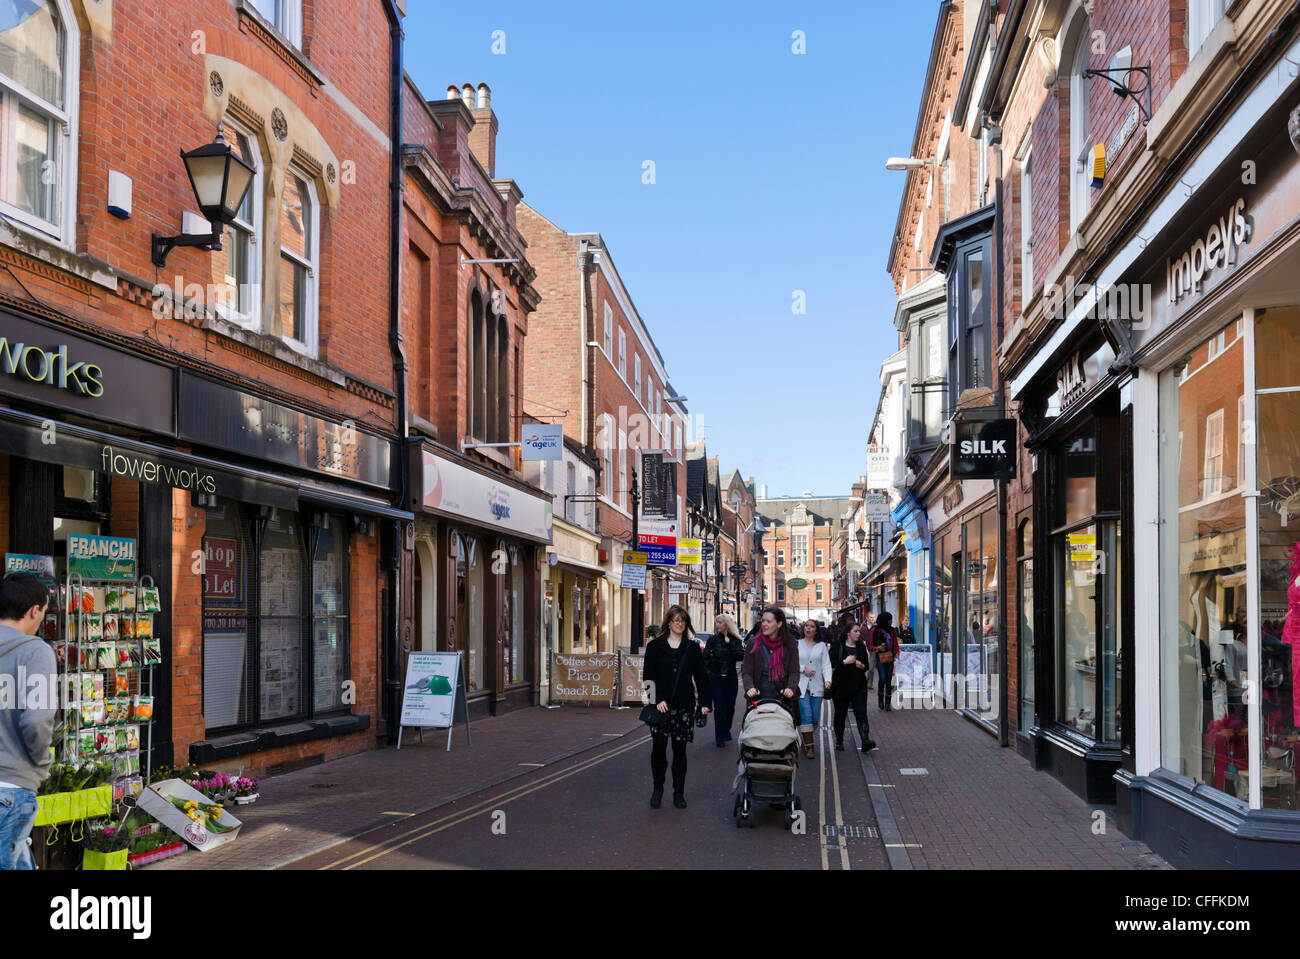 Shops on Loseby Lane in the city centre, Leicester, Leicestershire, England, UK - Stock Image